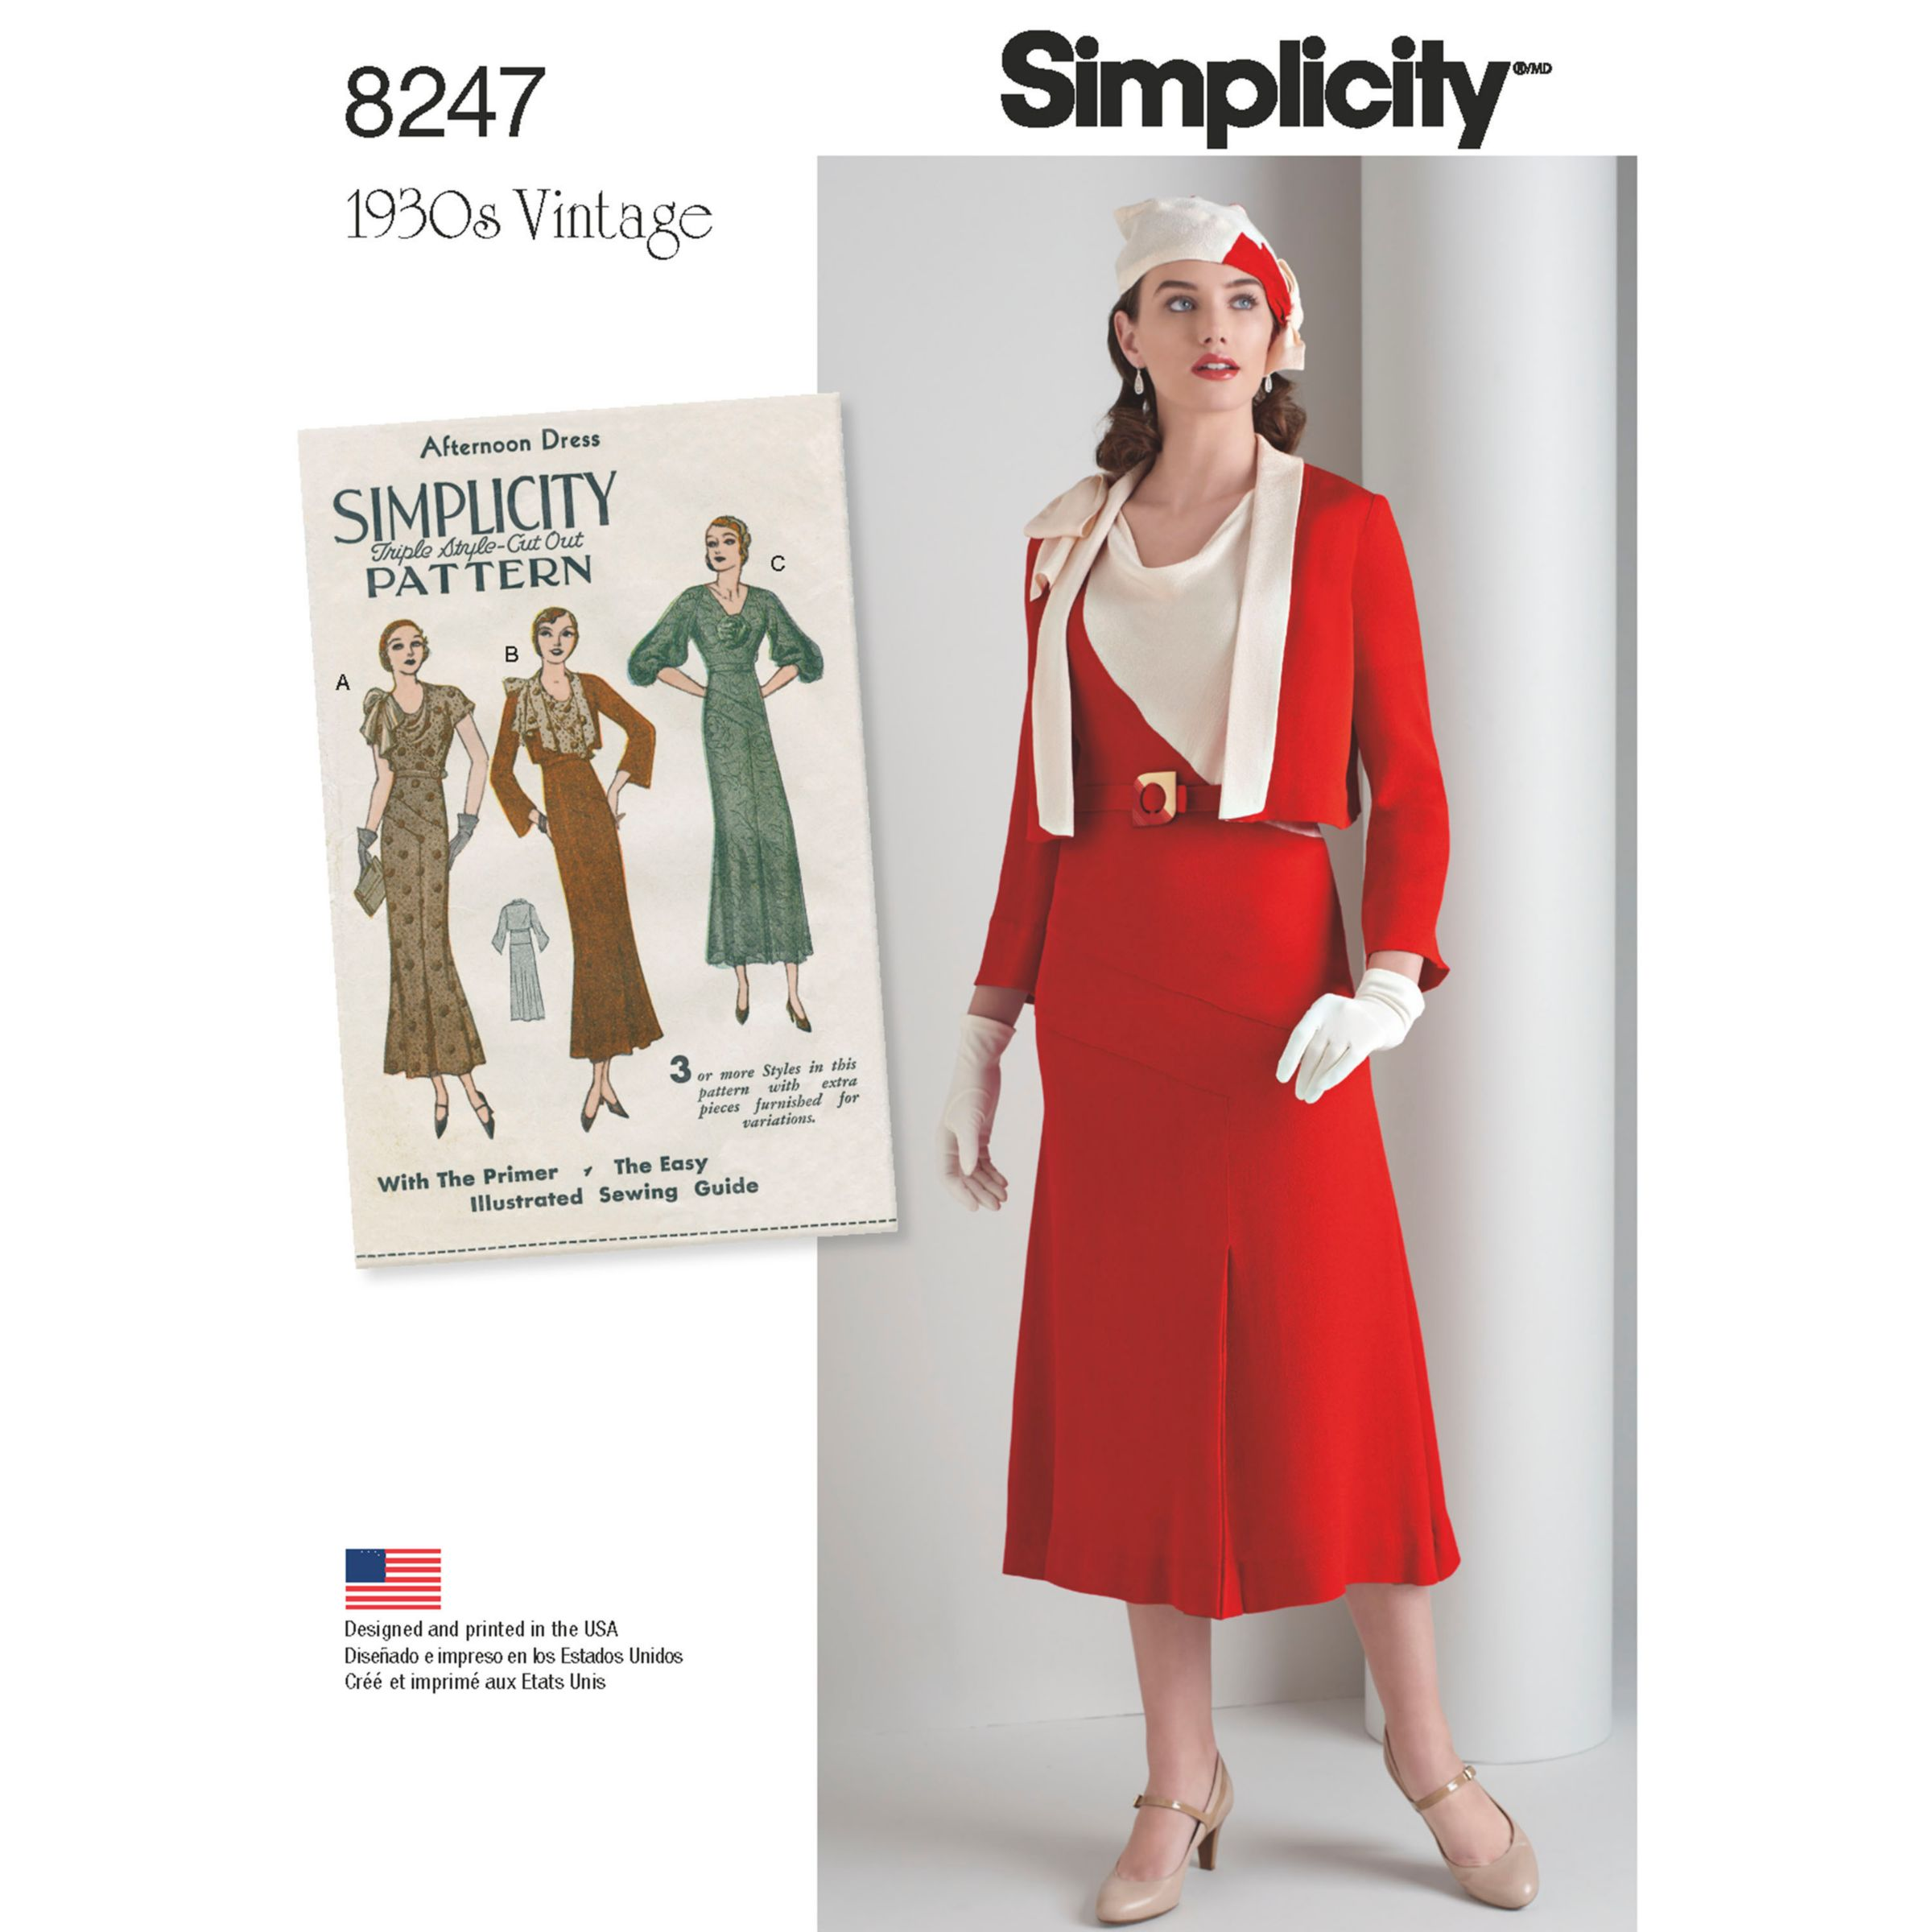 Simplicity Simplicity Women's 1930s Dress and Jacket Sewing Pattern, 8247